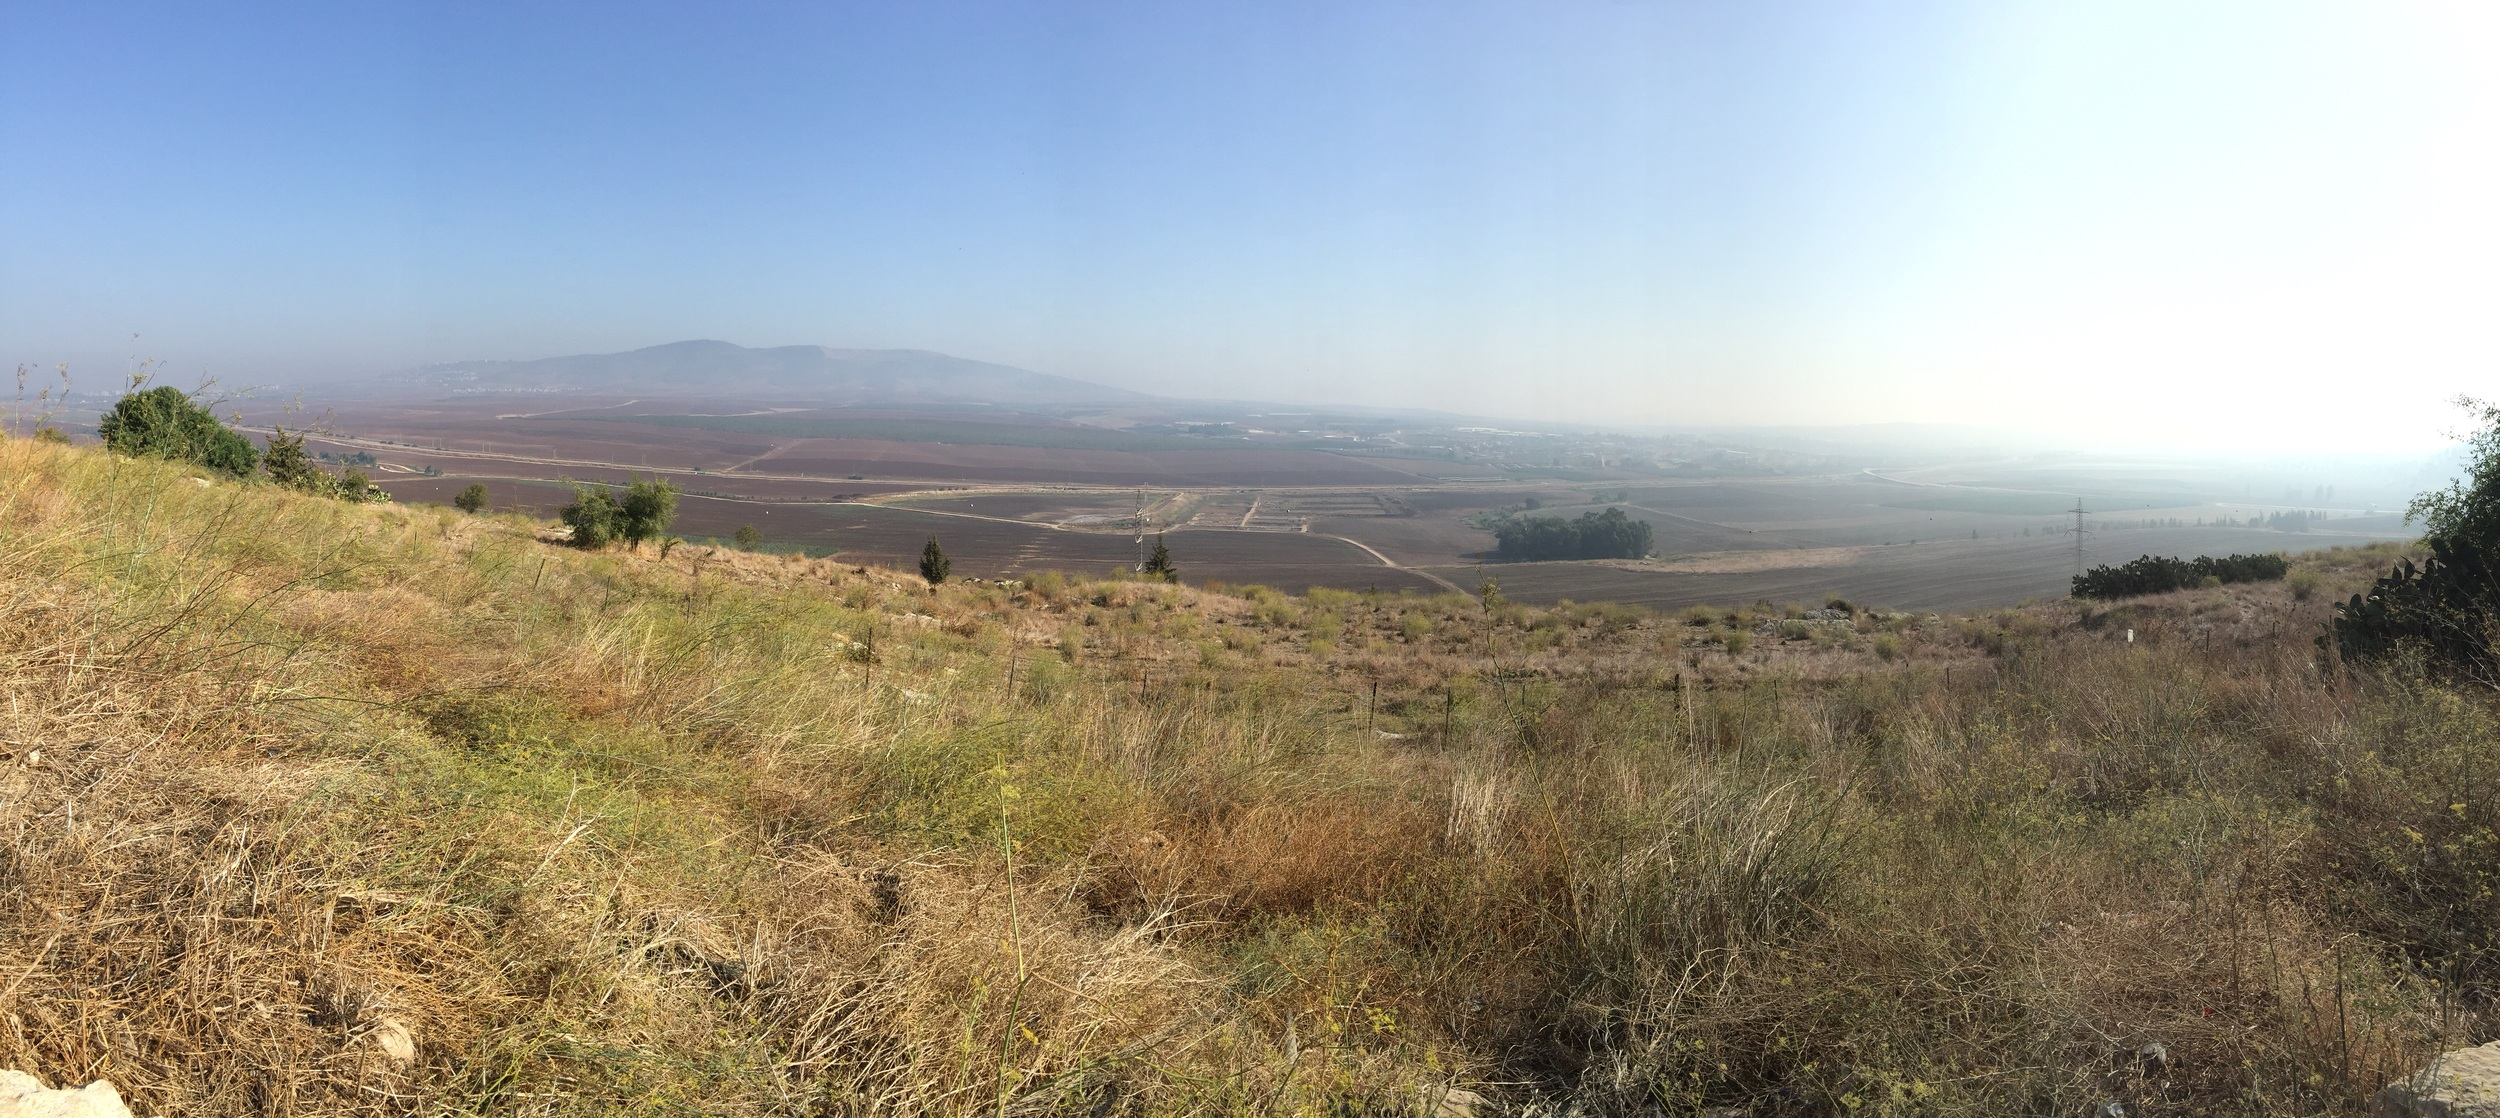 On top of Tel Jezreel looking north & east at hill Moreh on the left, and the Jezreel valley below us.